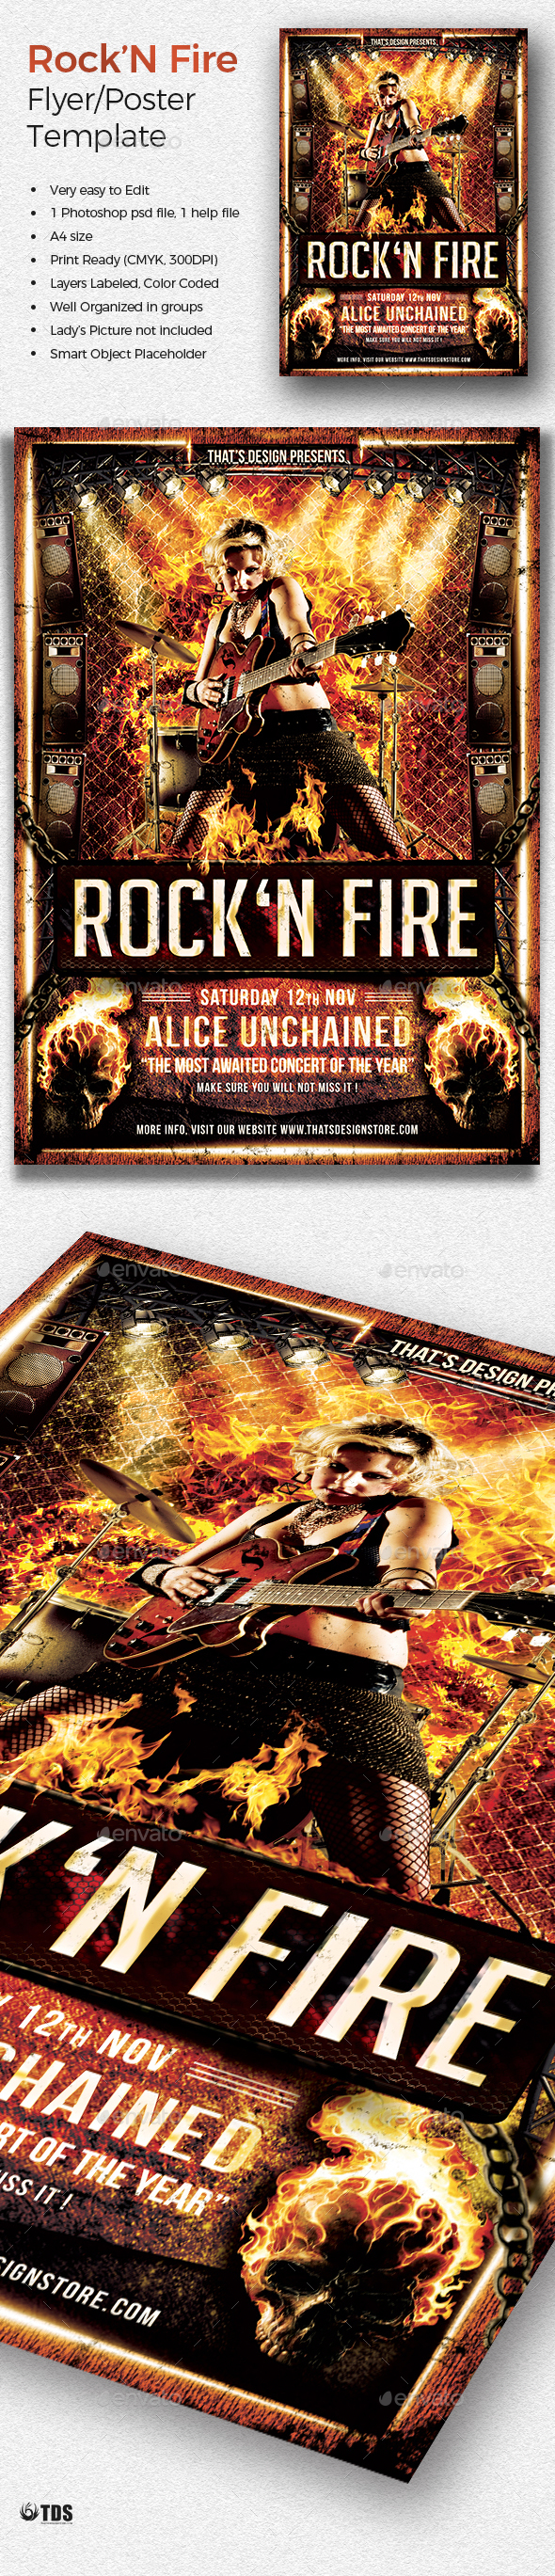 Rock' N Fire Live Flyer Template - Concerts Events